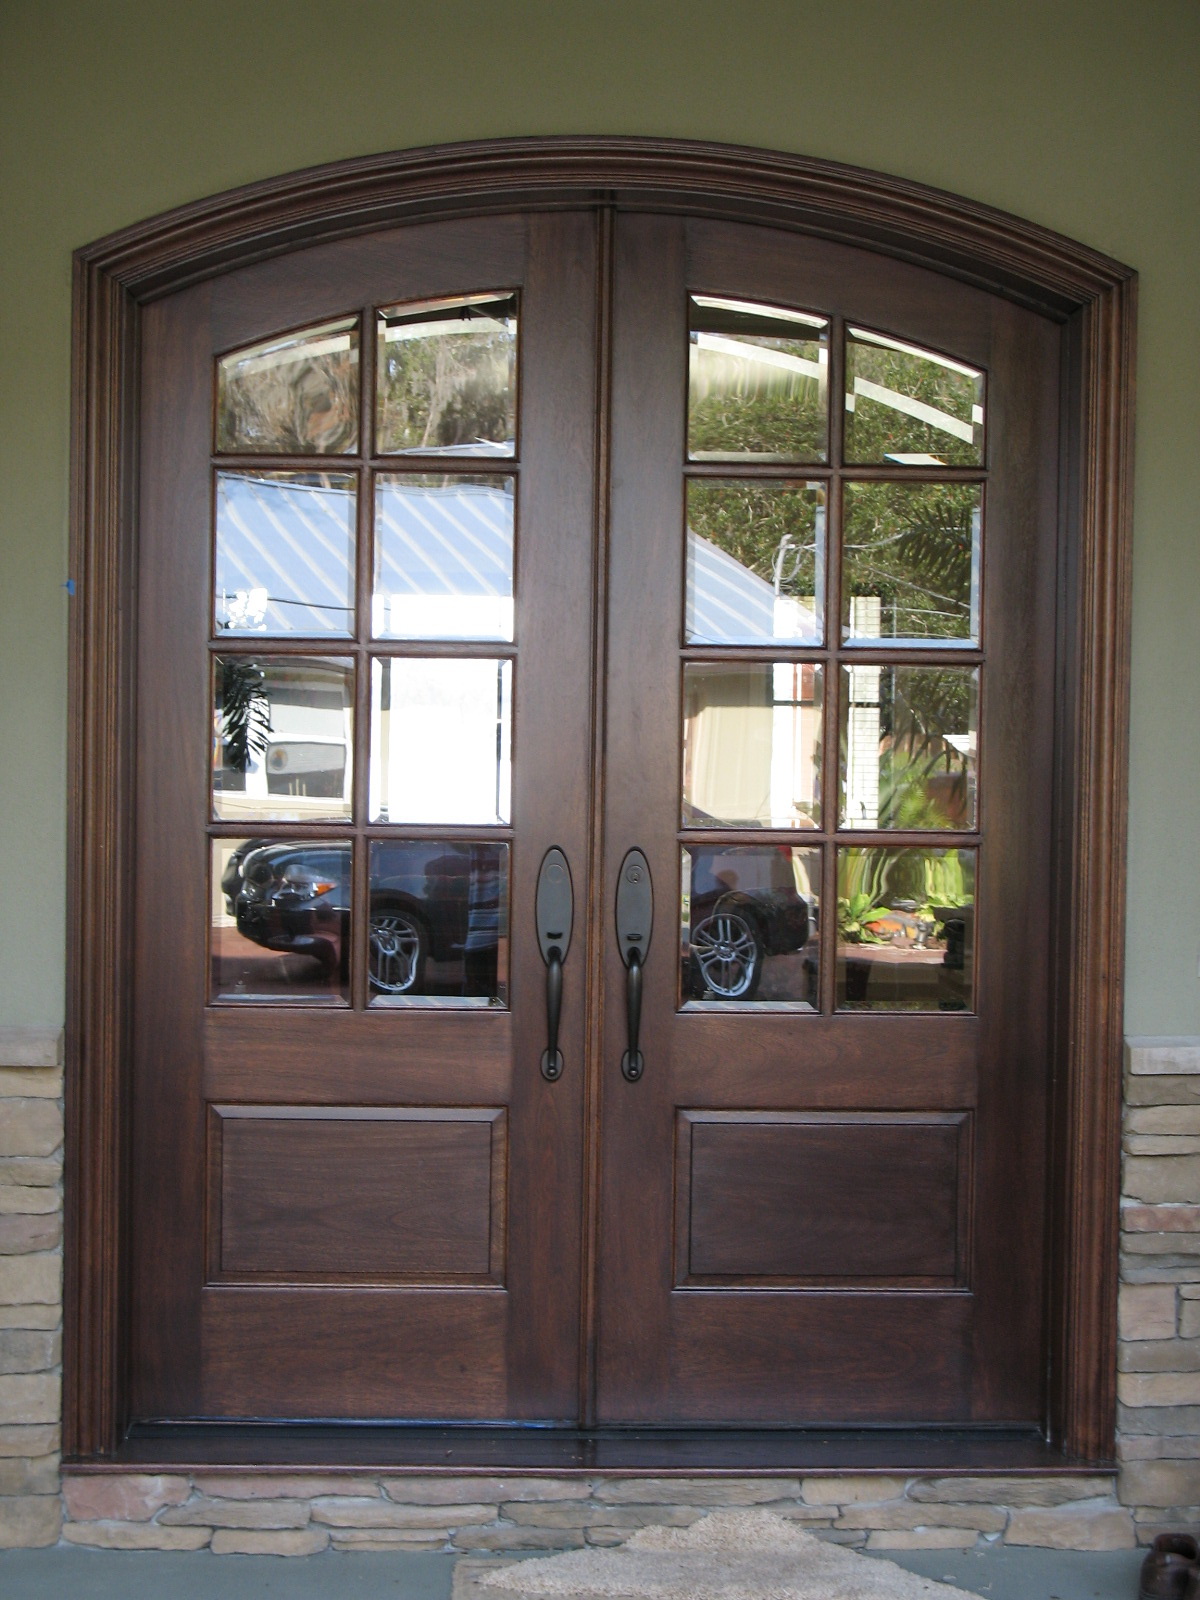 1000 images about front doors on pinterest for Entrance door with window